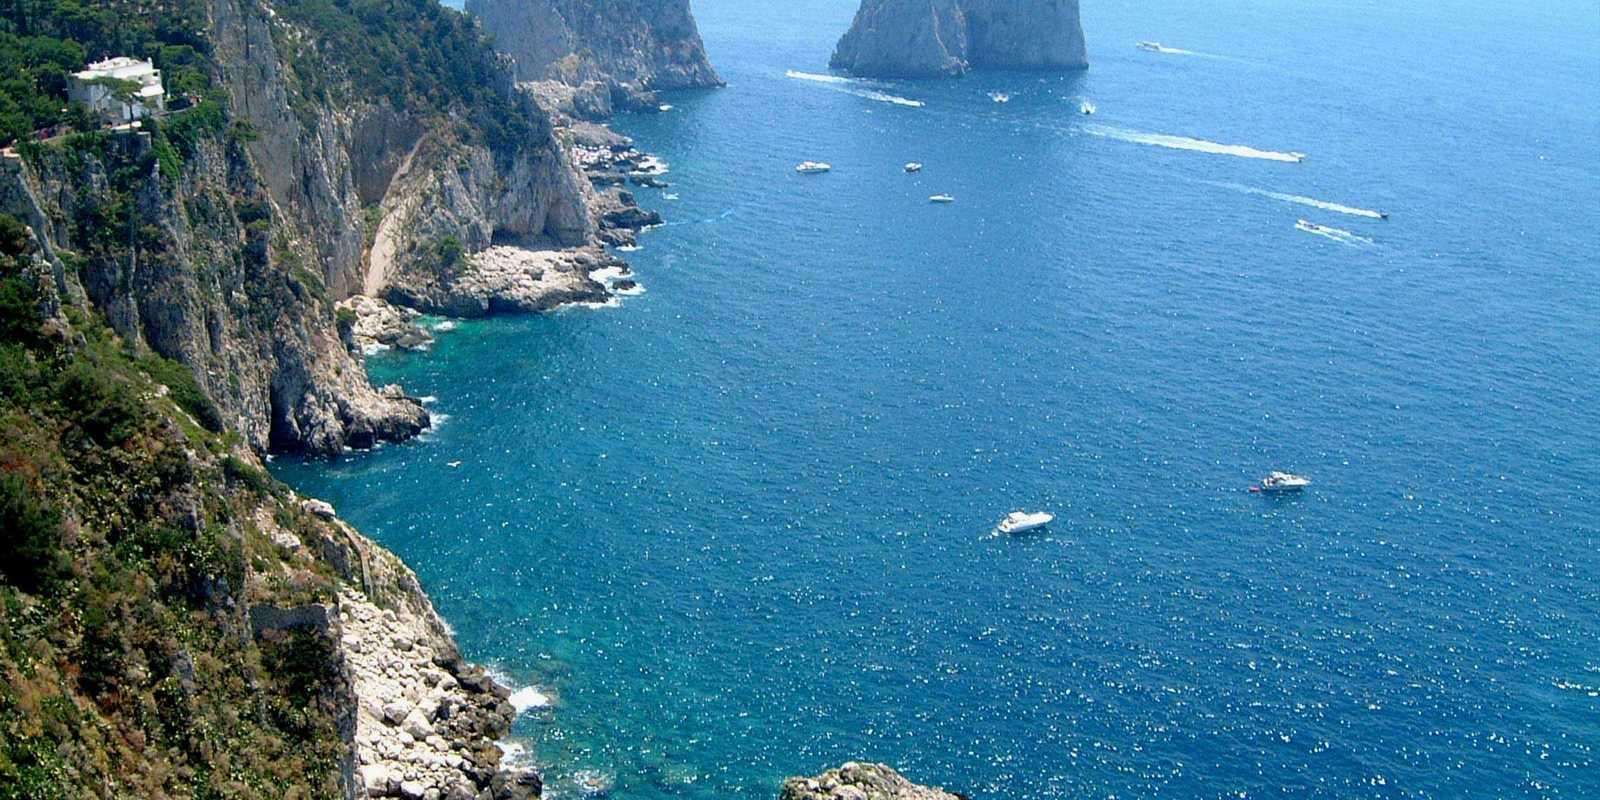 Capri and Ischia the pearls of the Gulf of Naples ... unmissable!